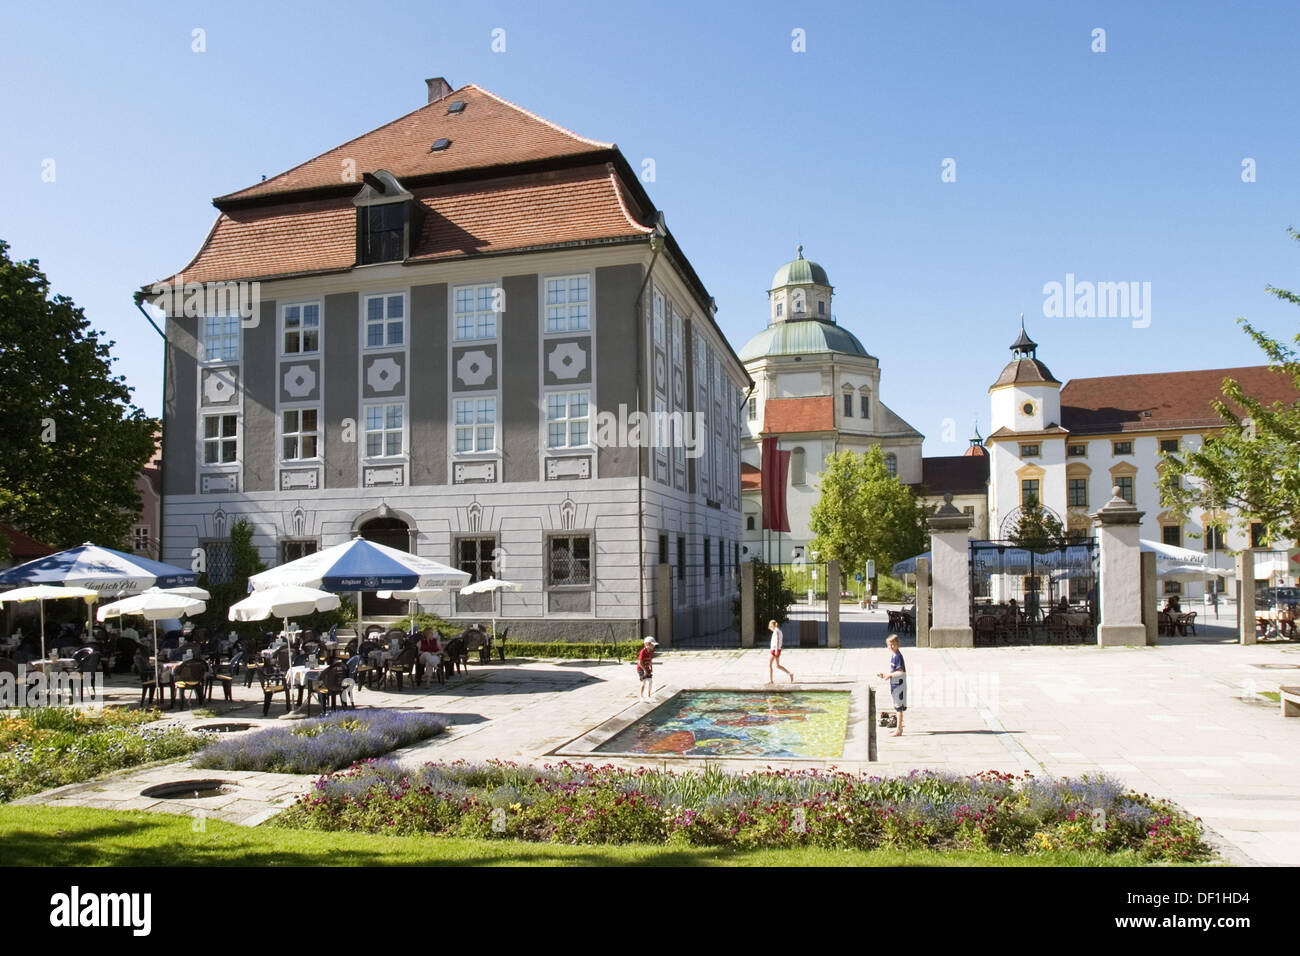 zumsteinhaus and church st lorenz in kempten bavaria germany stock photo royalty free image. Black Bedroom Furniture Sets. Home Design Ideas